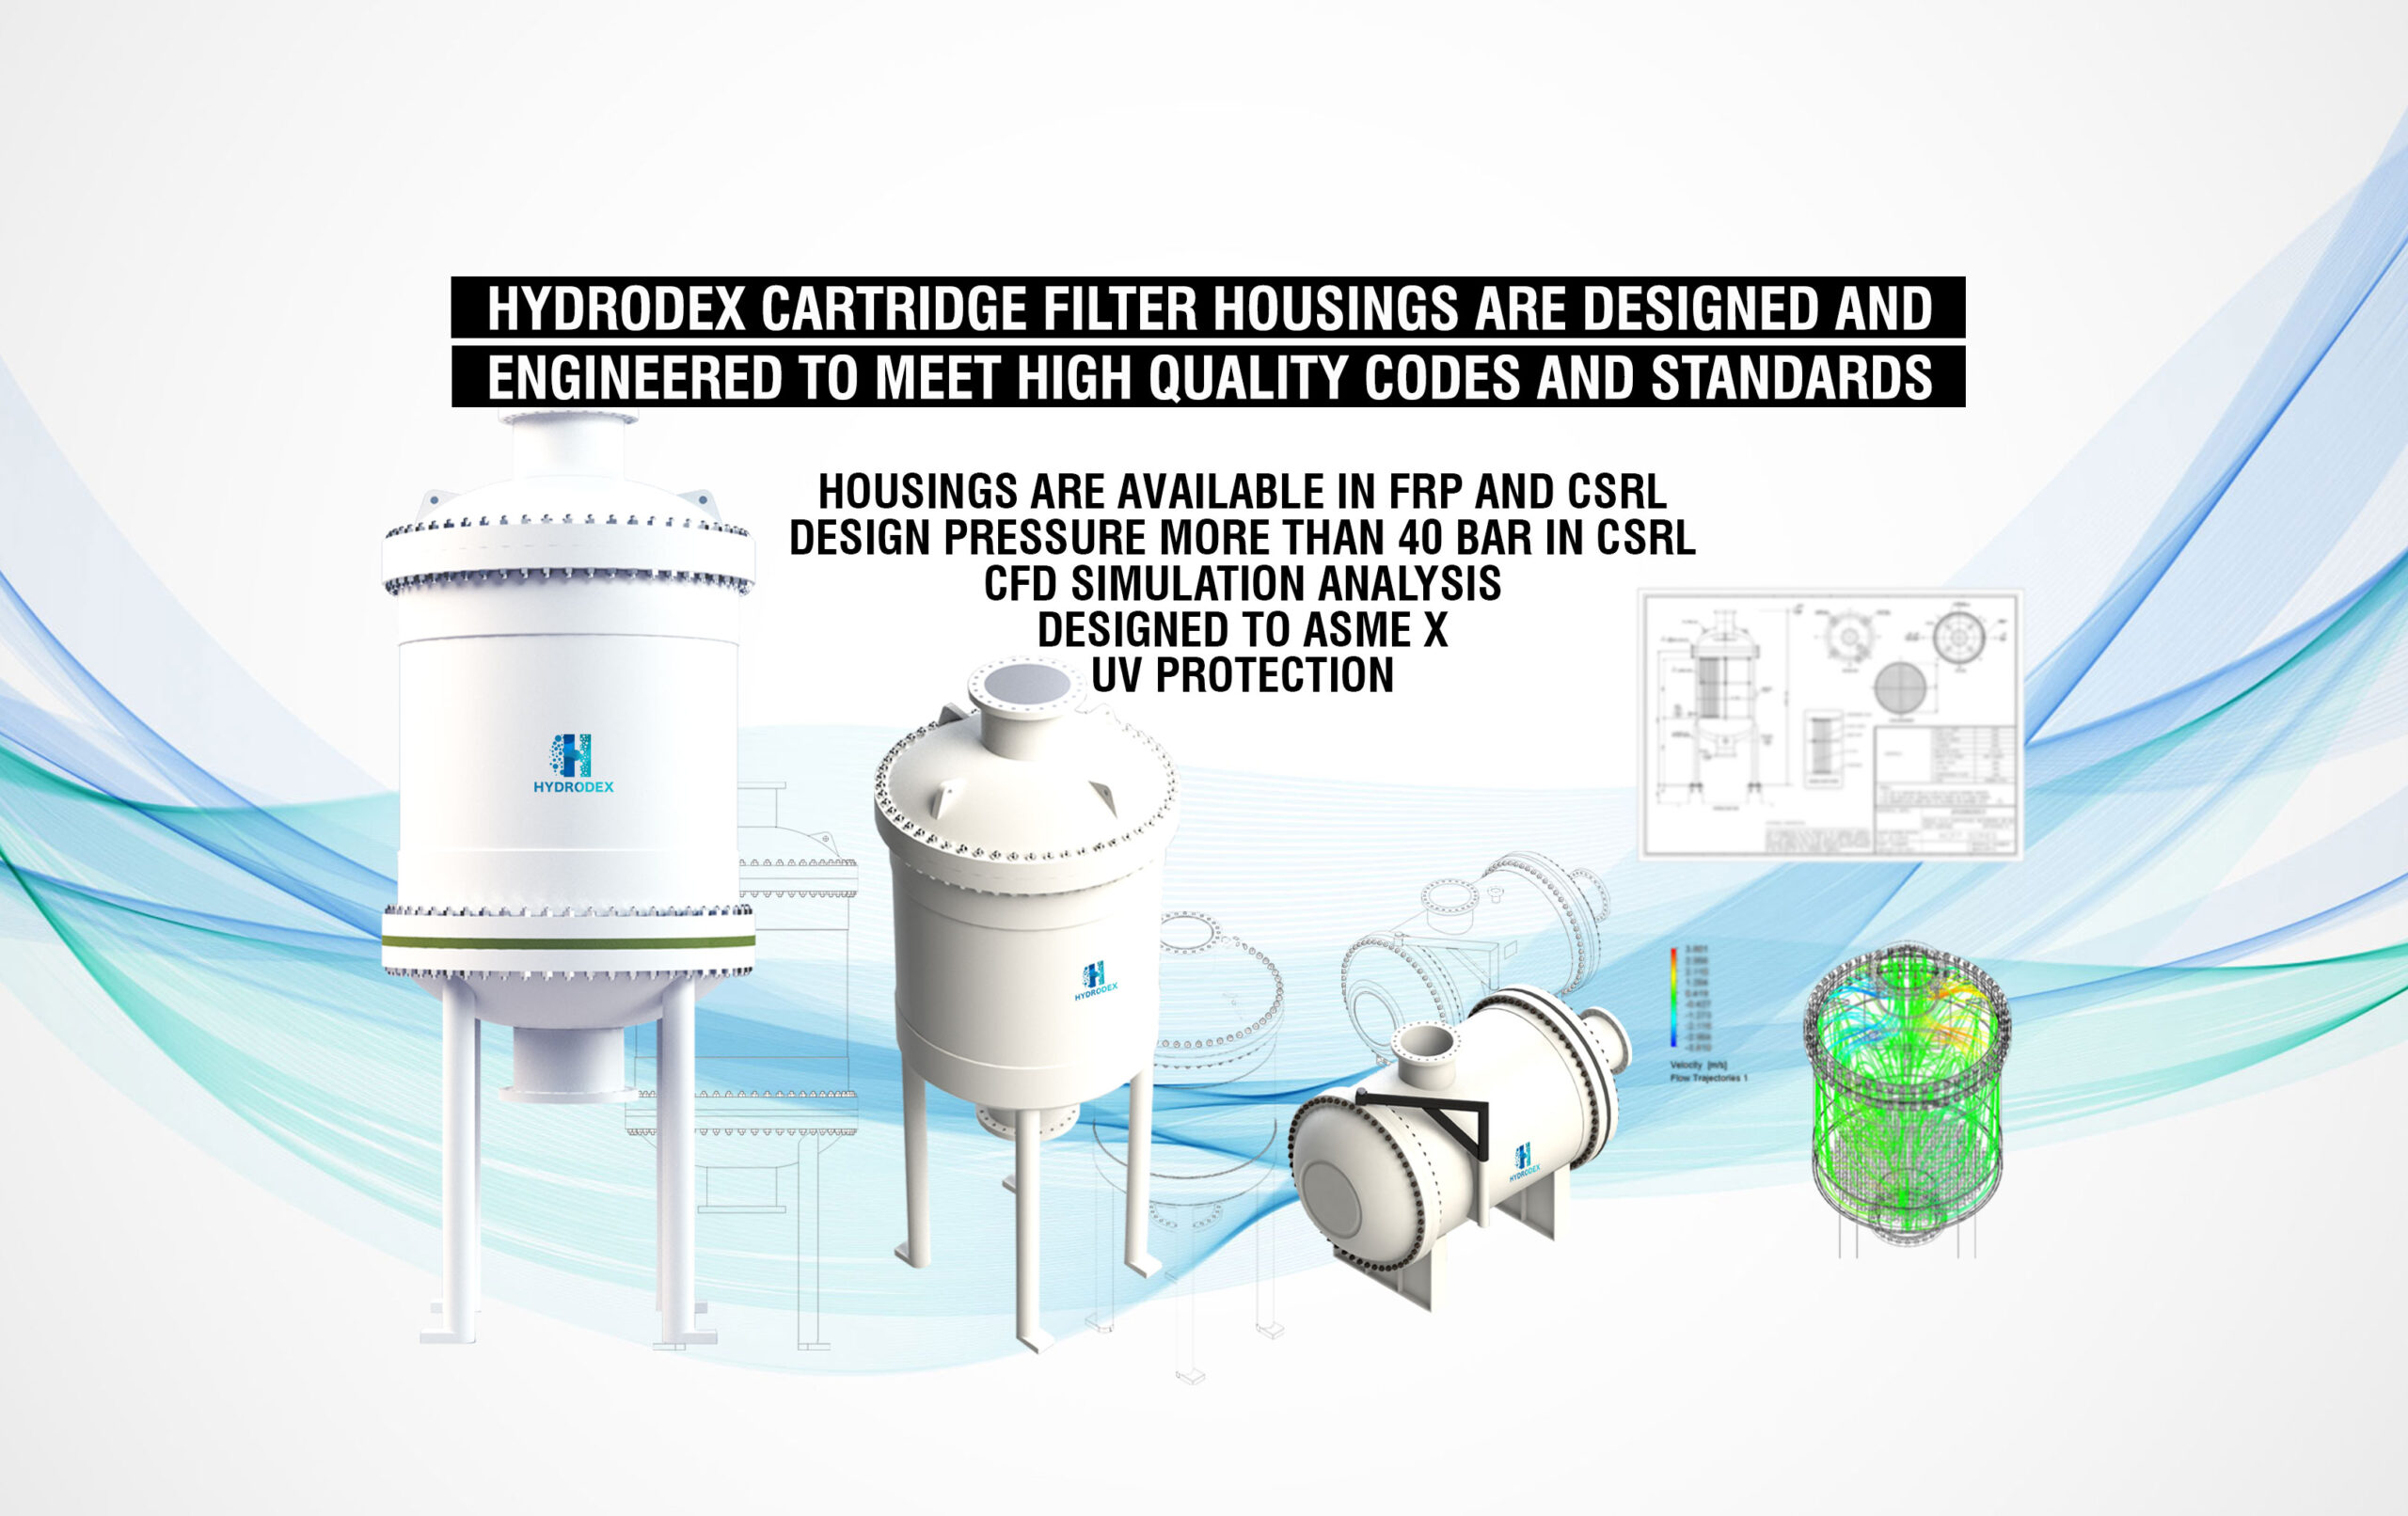 hydrodex frp csrl carbon steel rubber lined cartridge filter housing cfd simulation uv protection high pressure vessel